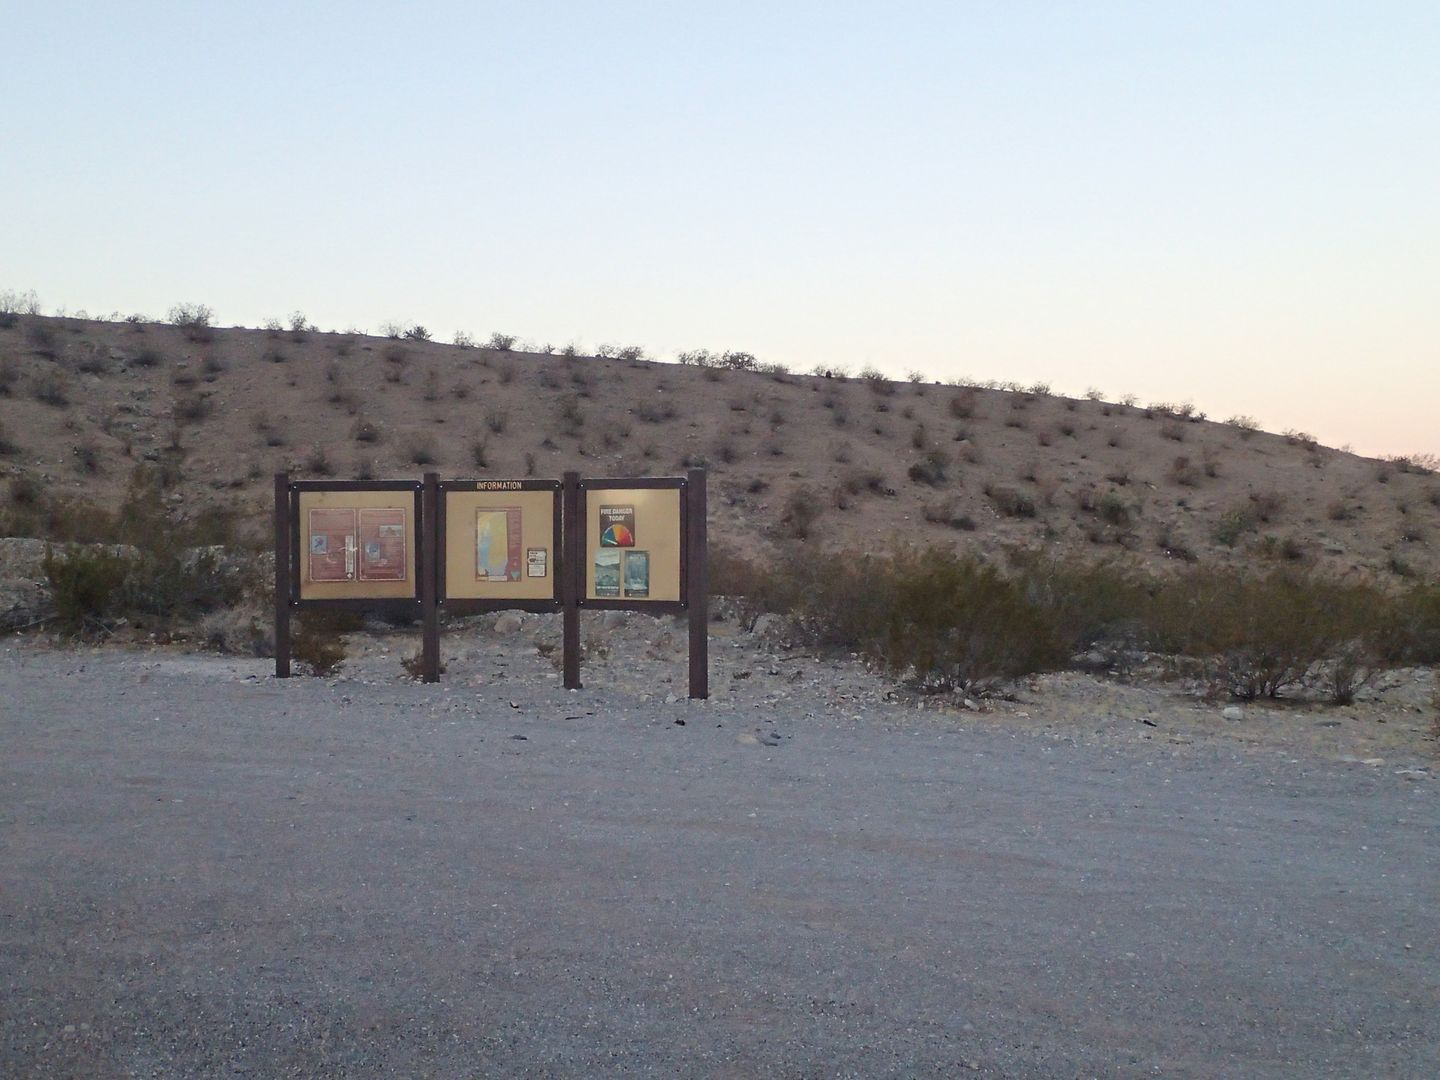 Gold Butte Backcountry Byway - Waypoint 1: Start